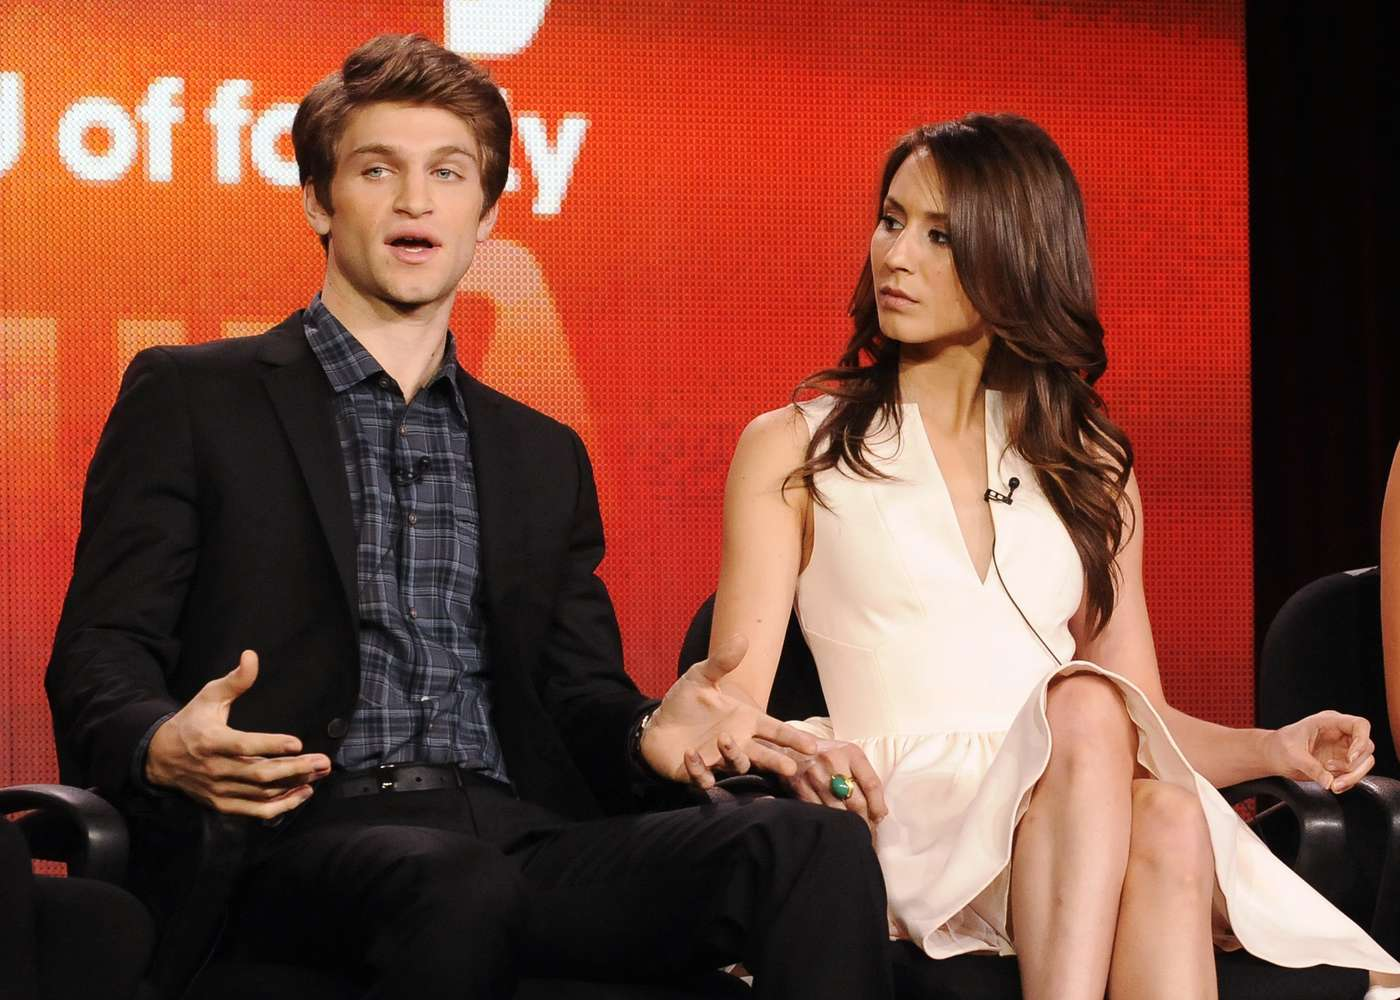 troian bellisario y keegan allen dating Is shay mitchell dating keegan allen its troian bellisario wrong troian bellisario is in a long term relationship with patrick j adams.